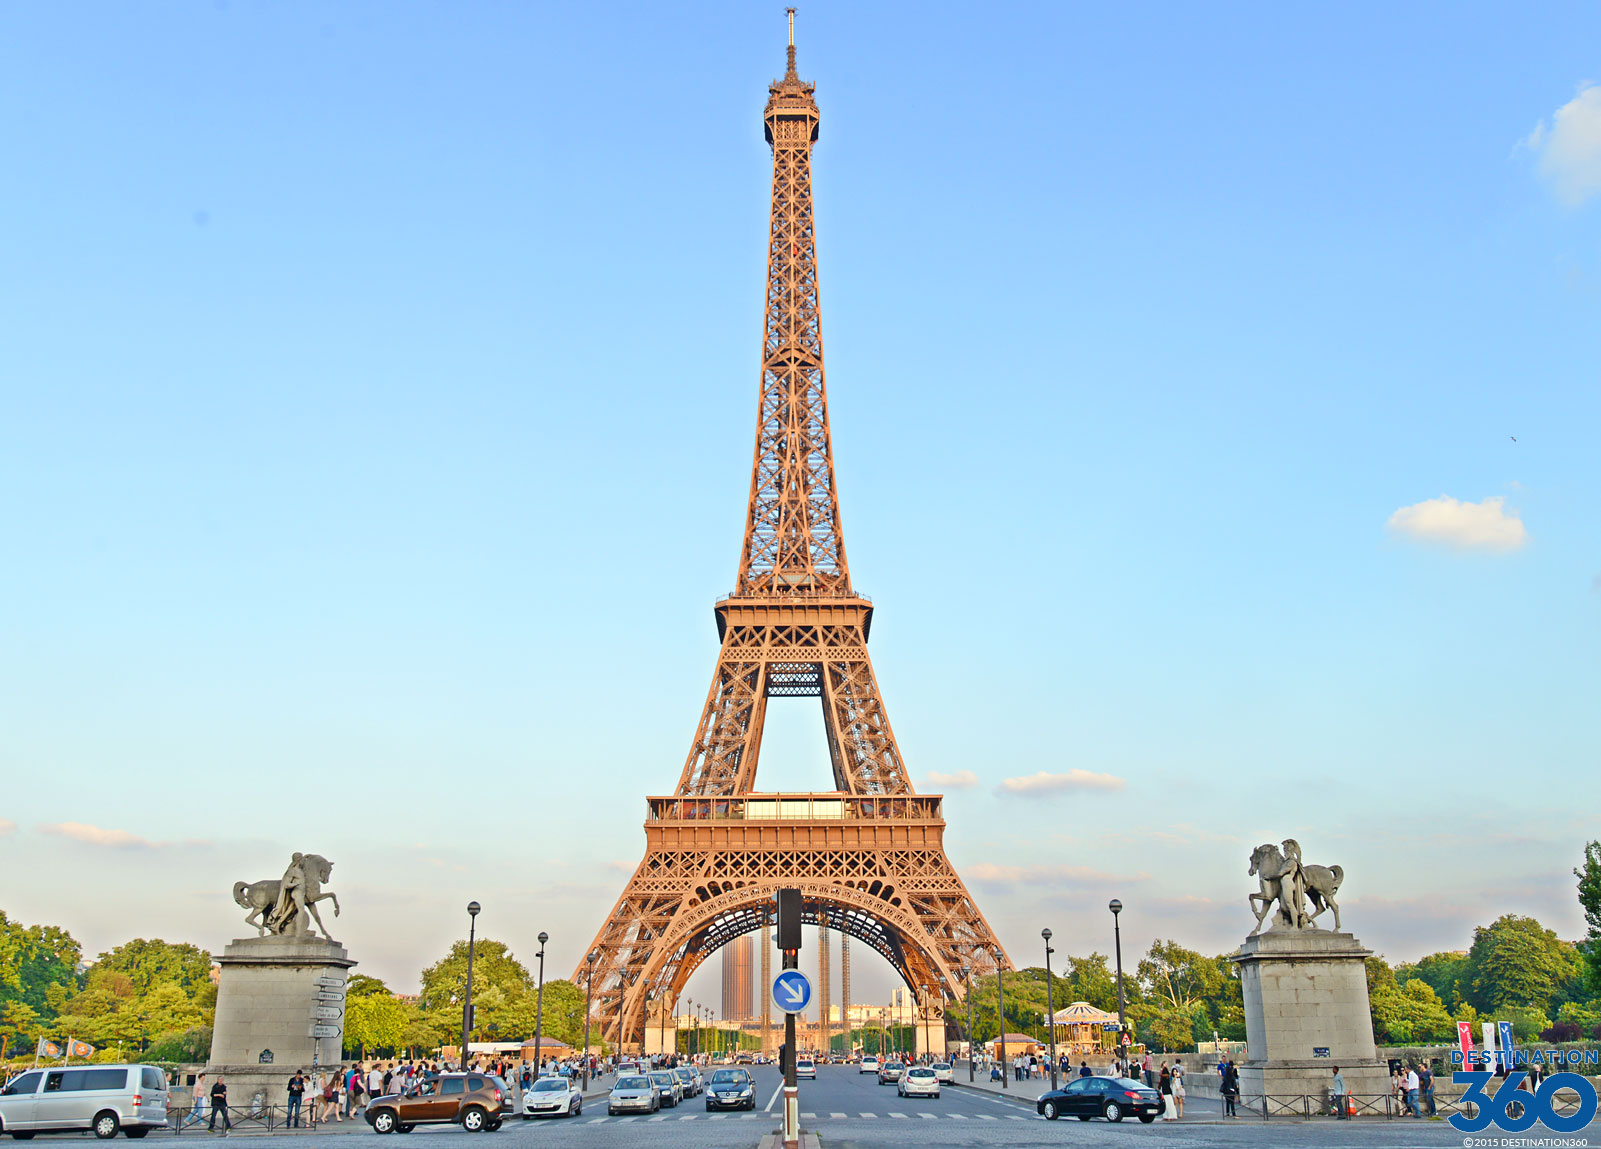 Tours of the Eiffel Tower Virtual Tour